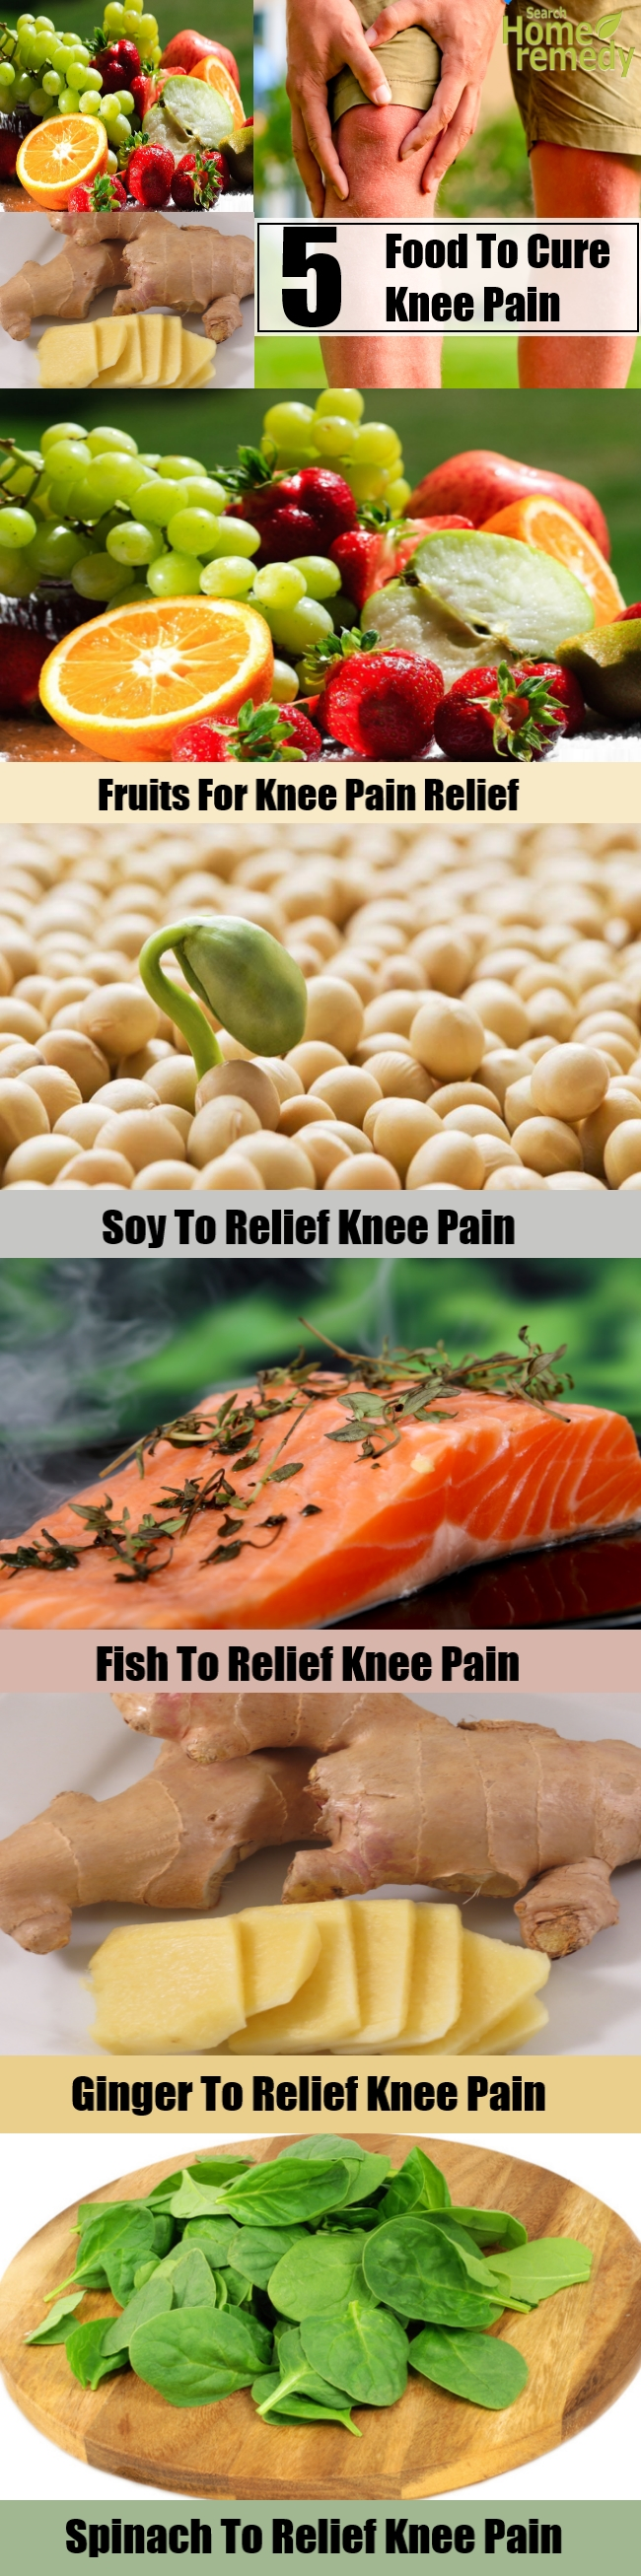 5 Food To Cure Knee Pain